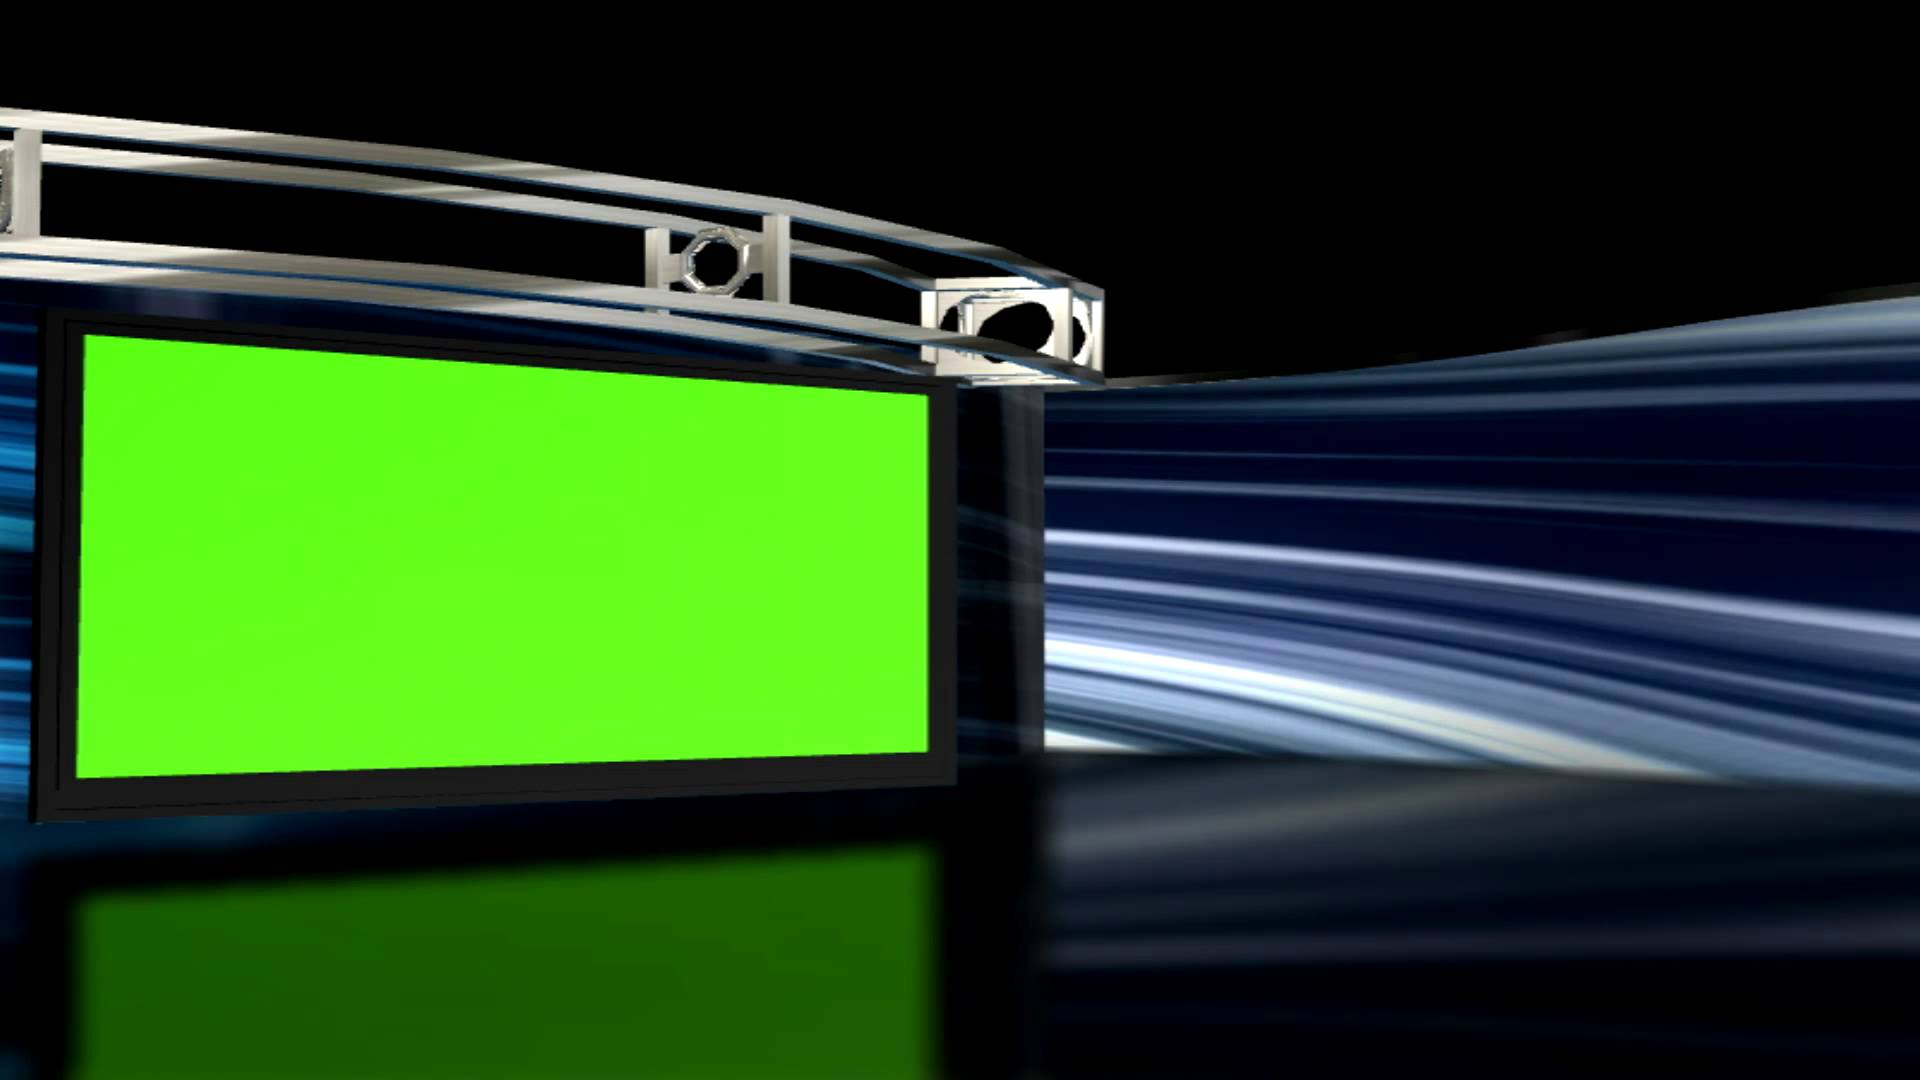 set Background 1 with Green screen TV set Chroma key 1920x1080